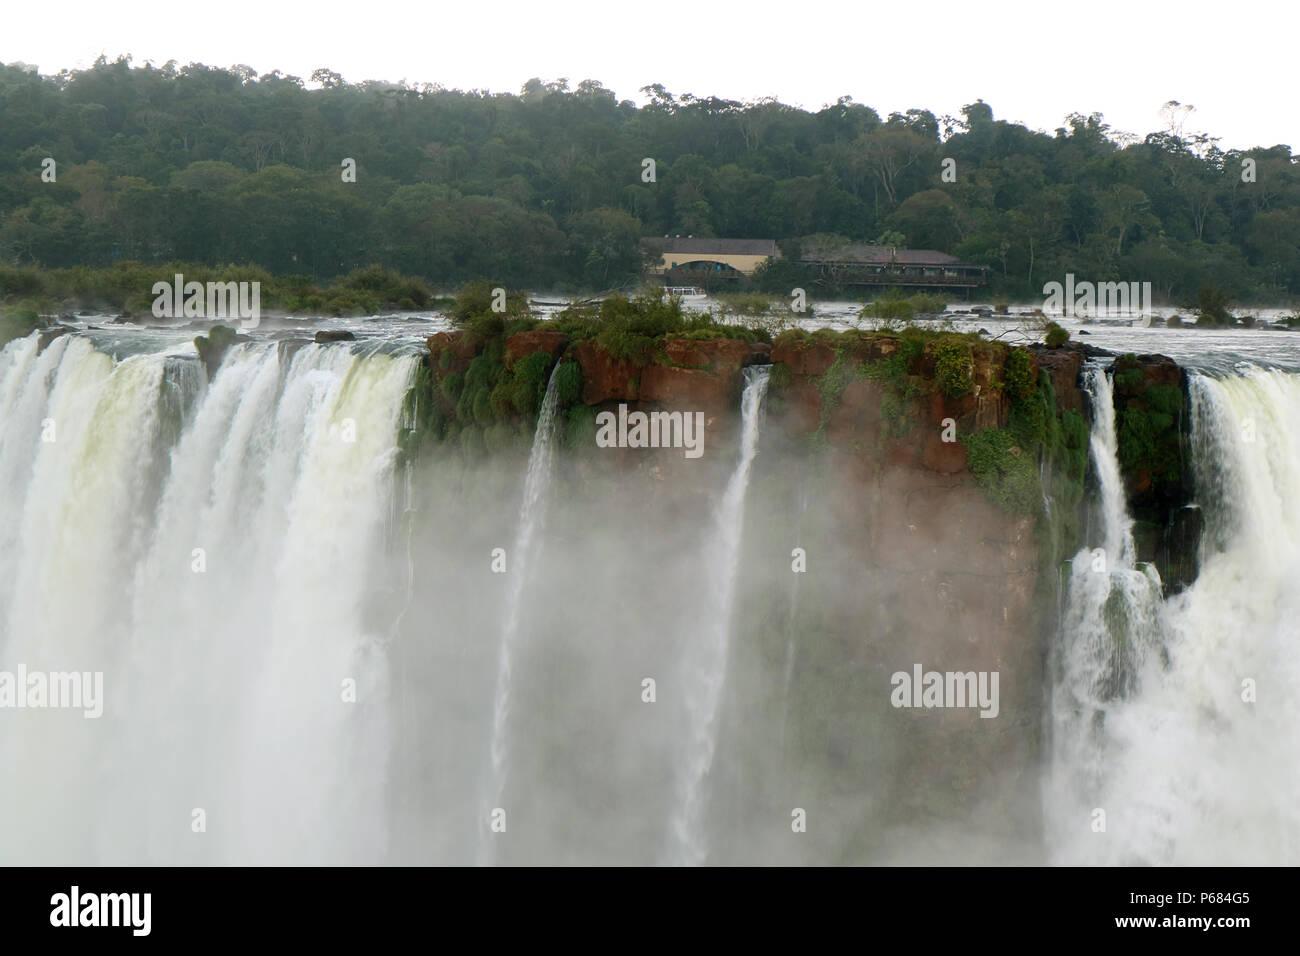 The powerful Devil's Throat of Iguazu Falls at Argentinian side, Misiones province, Argentina - Stock Image